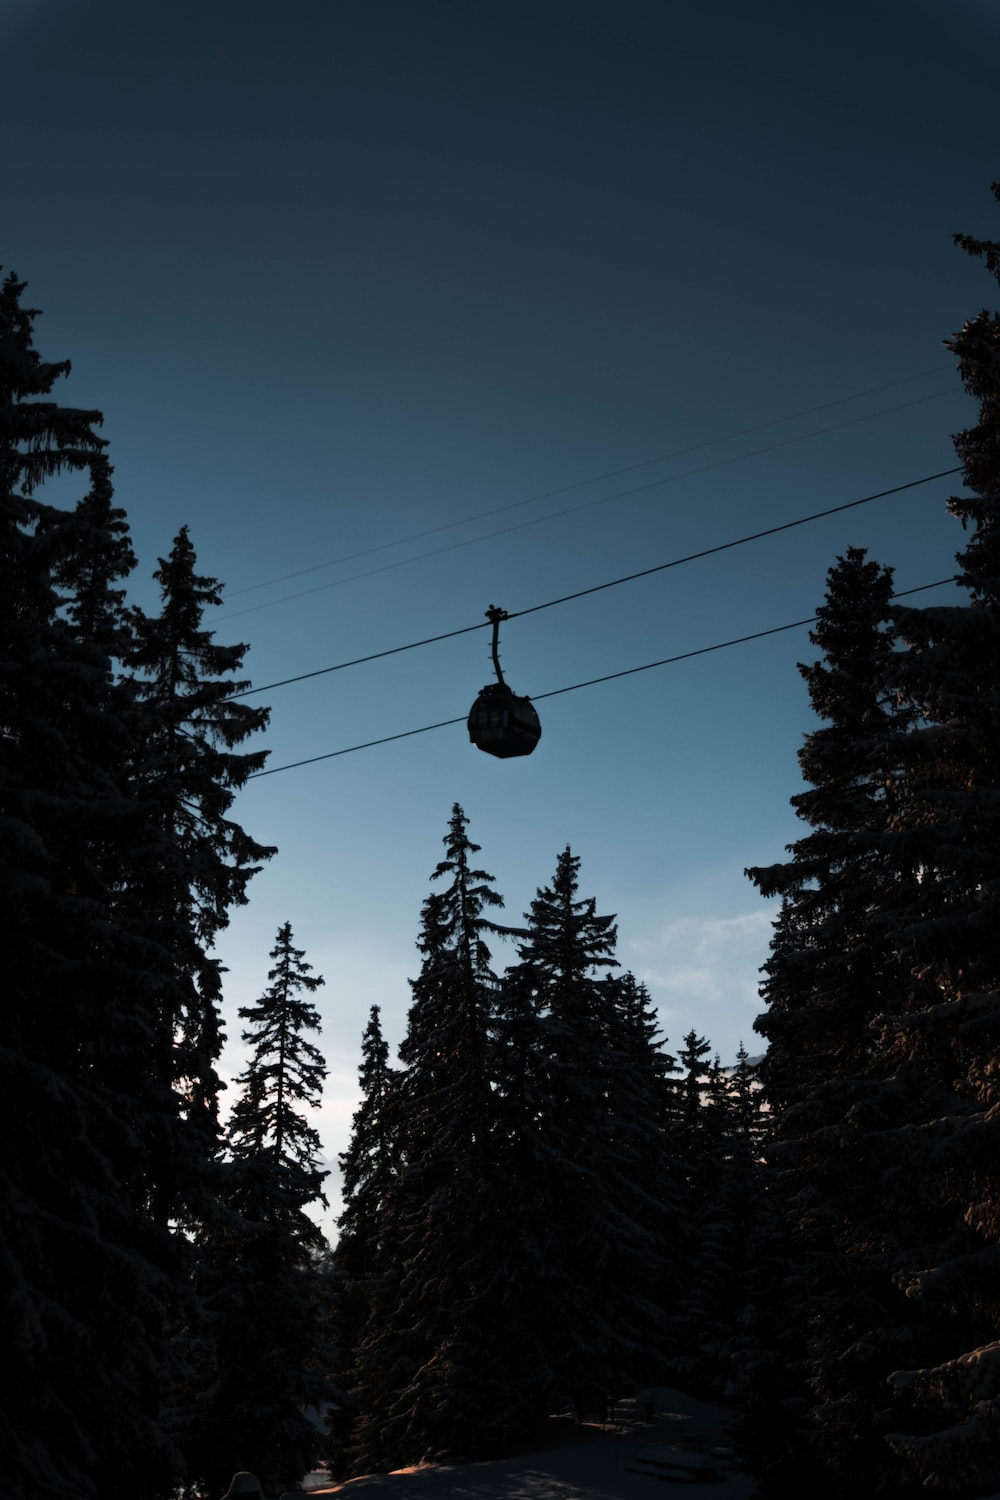 silhouette cable car and trees